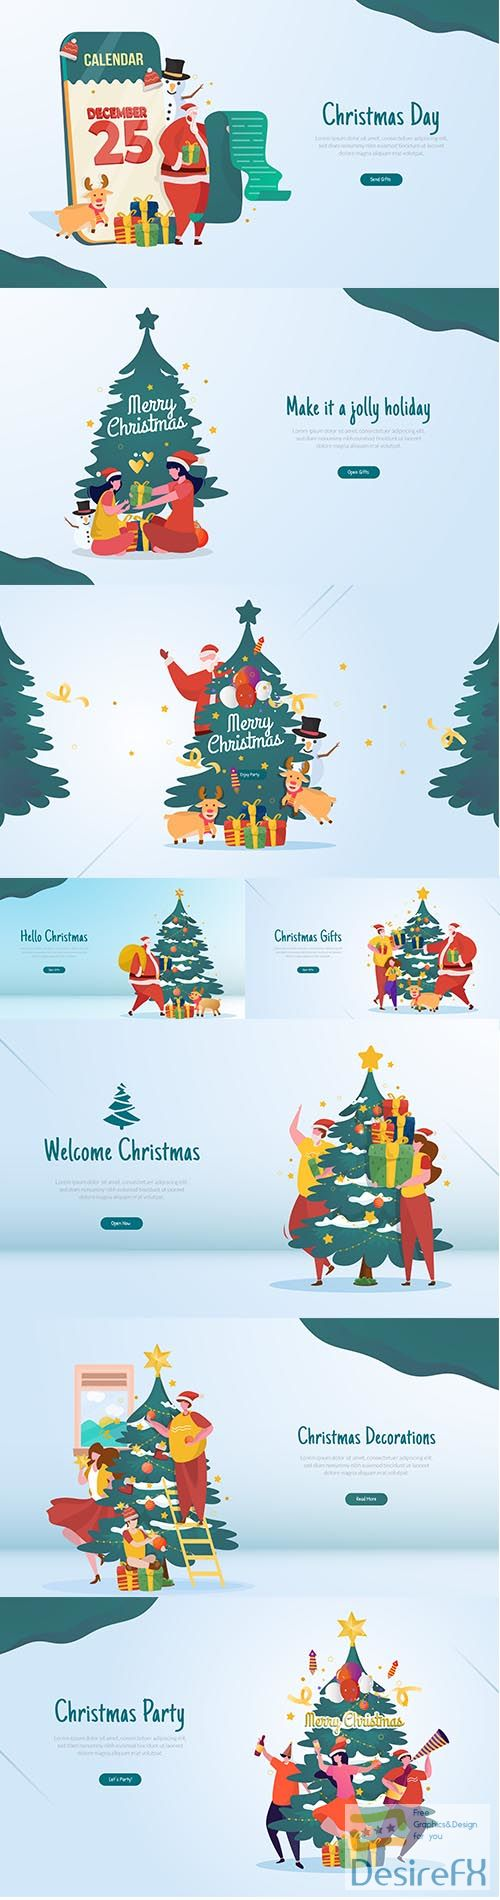 Flat illustration with christmas party celebration concept